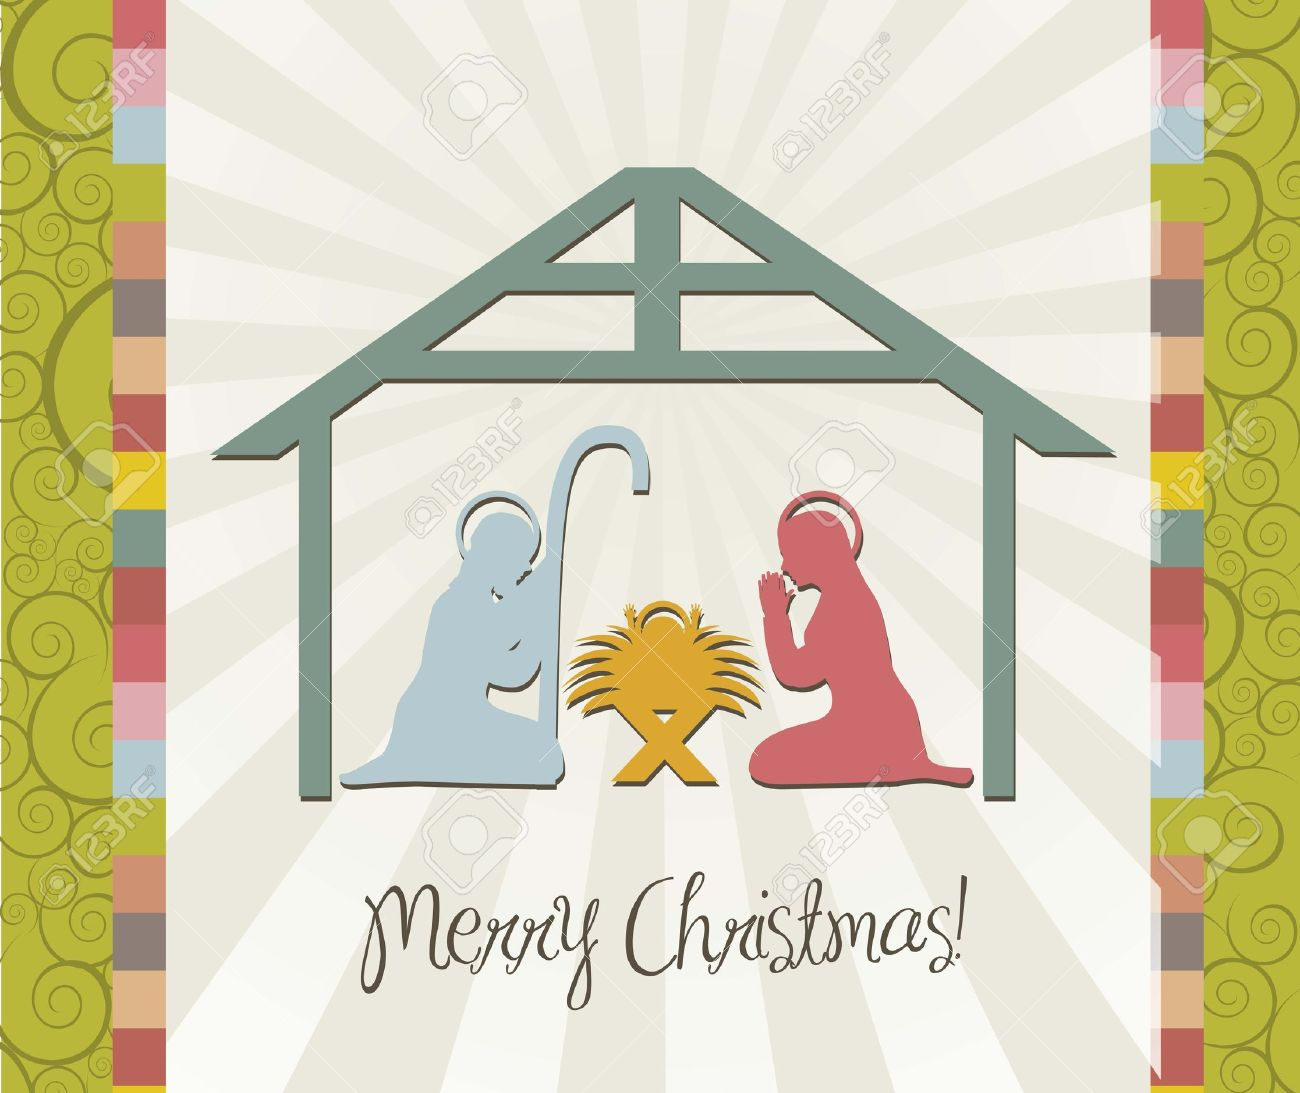 Merry Christmas Card Of Nativity Scene Vintage Vector Stock